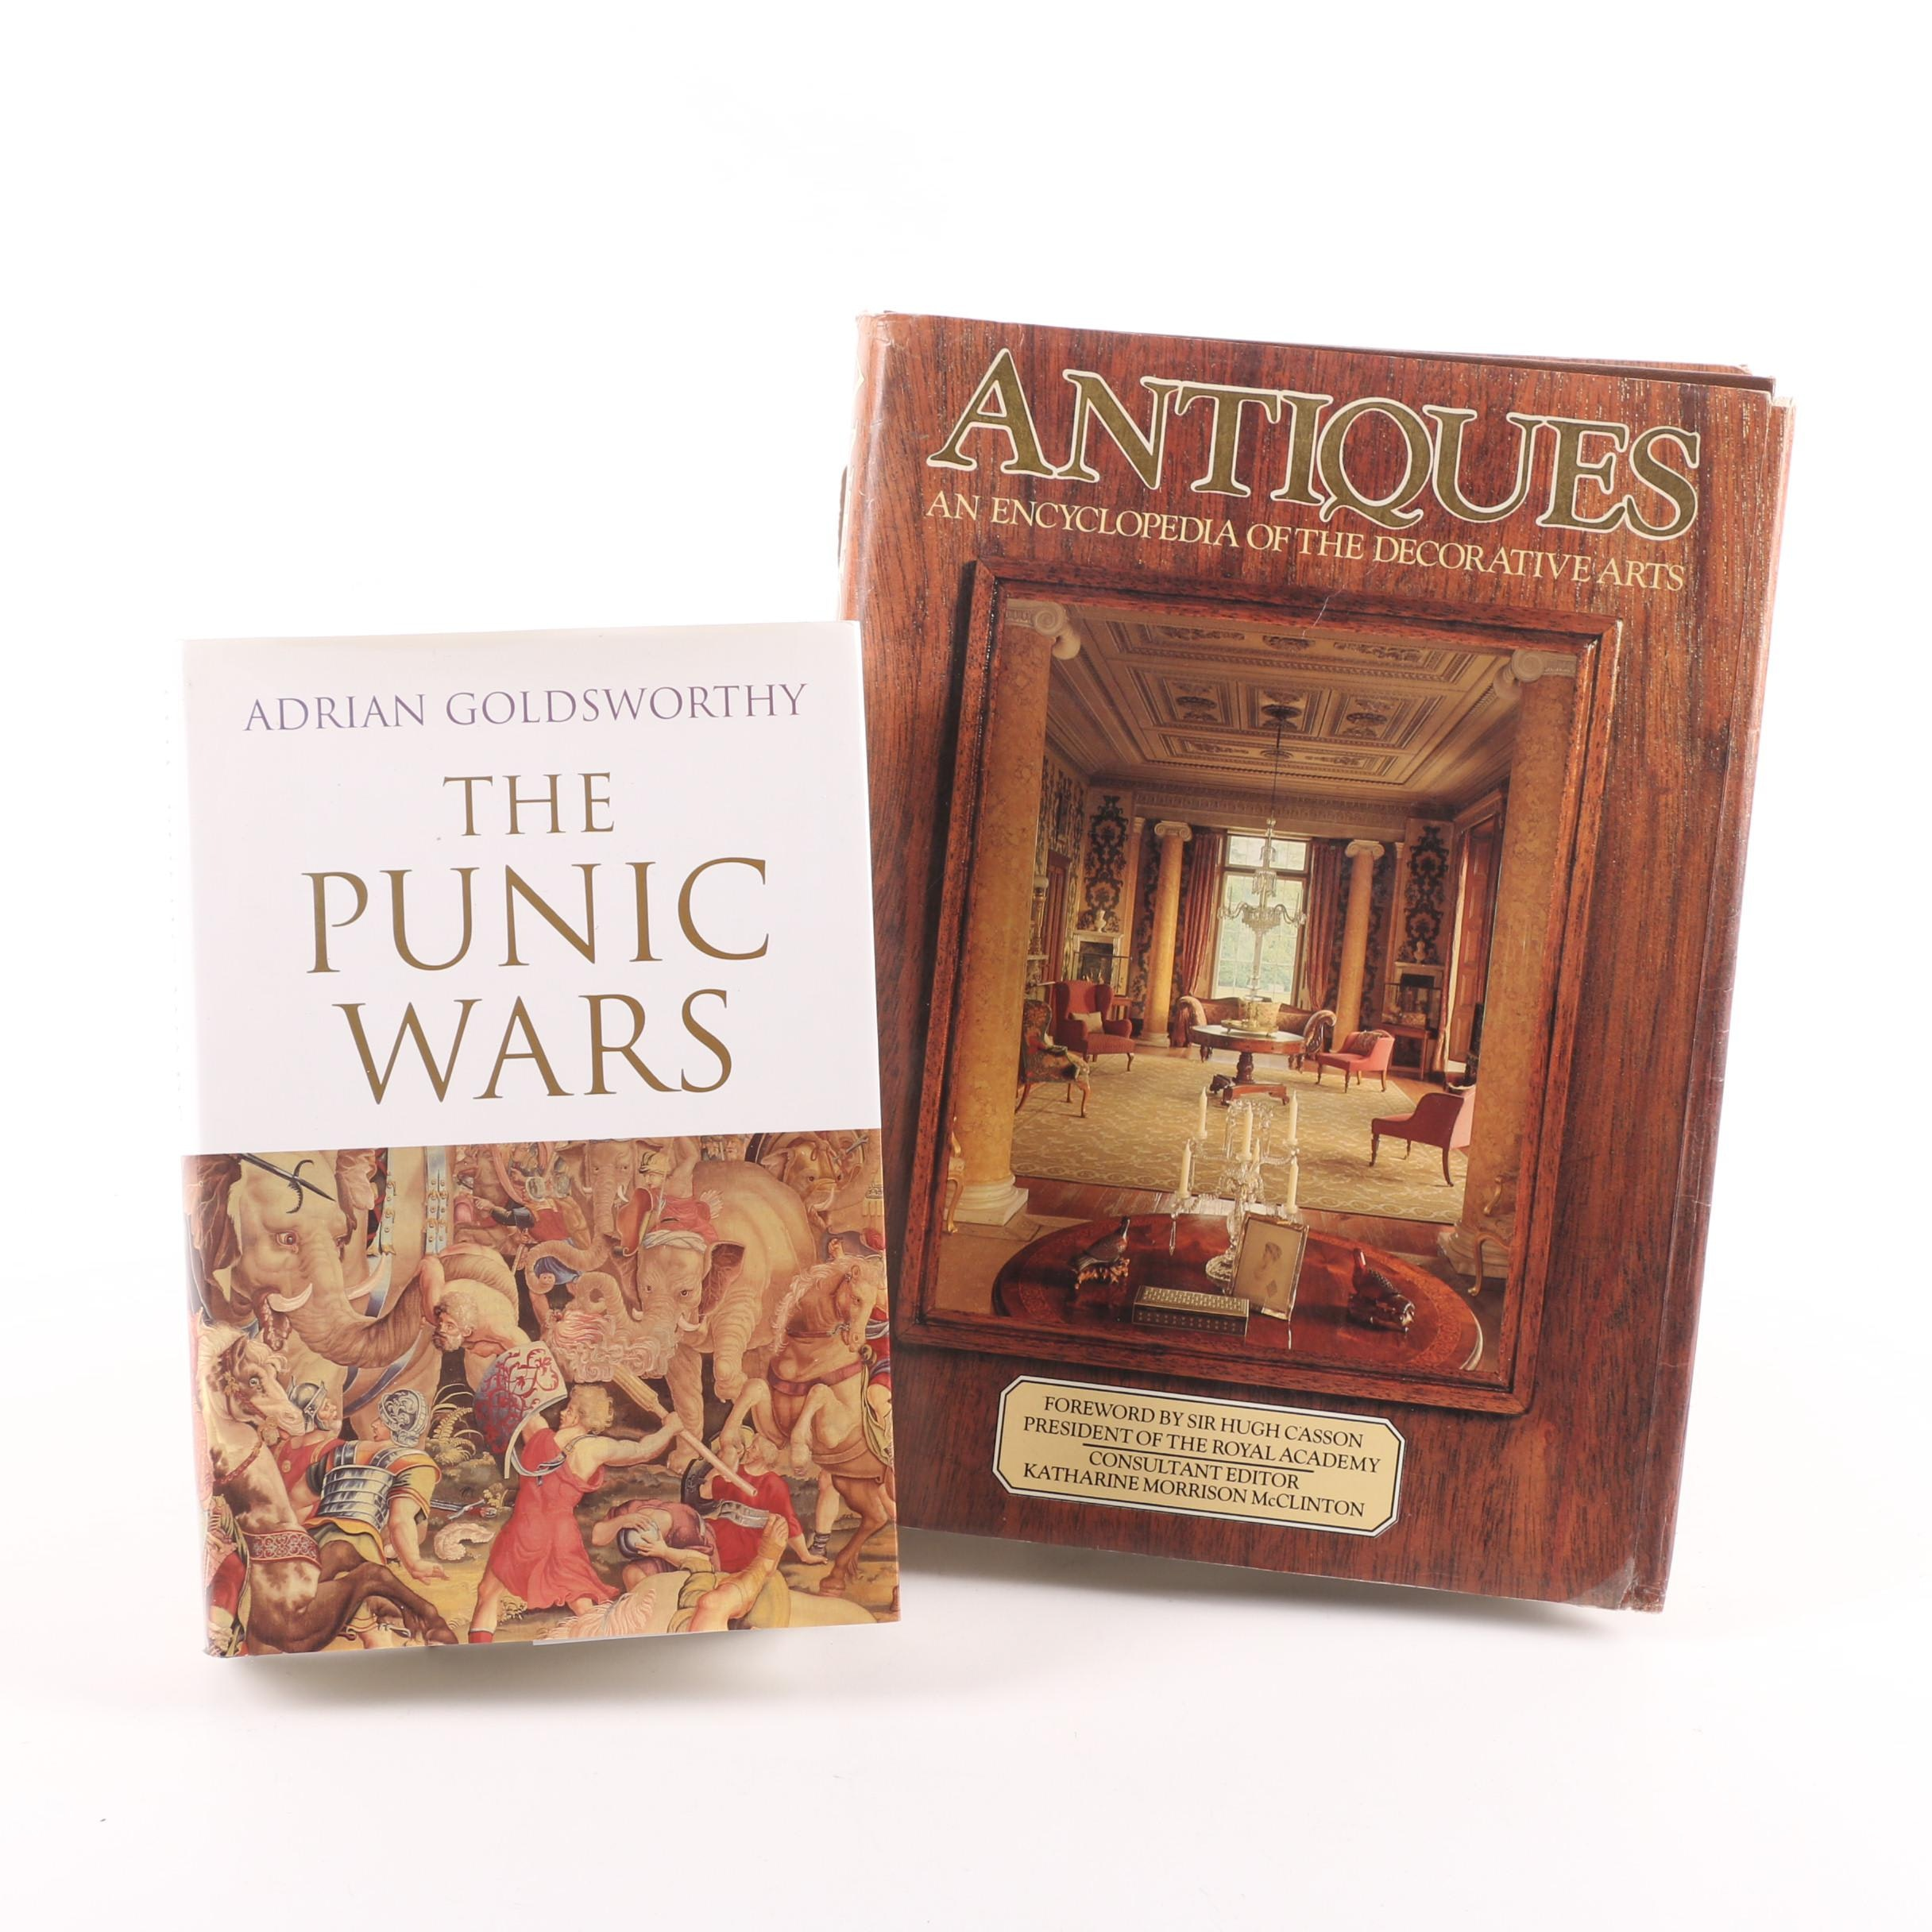 """2000 """"The Punic Wars"""" by Adrian Goldsworthy and 1979 """"Antiques"""""""